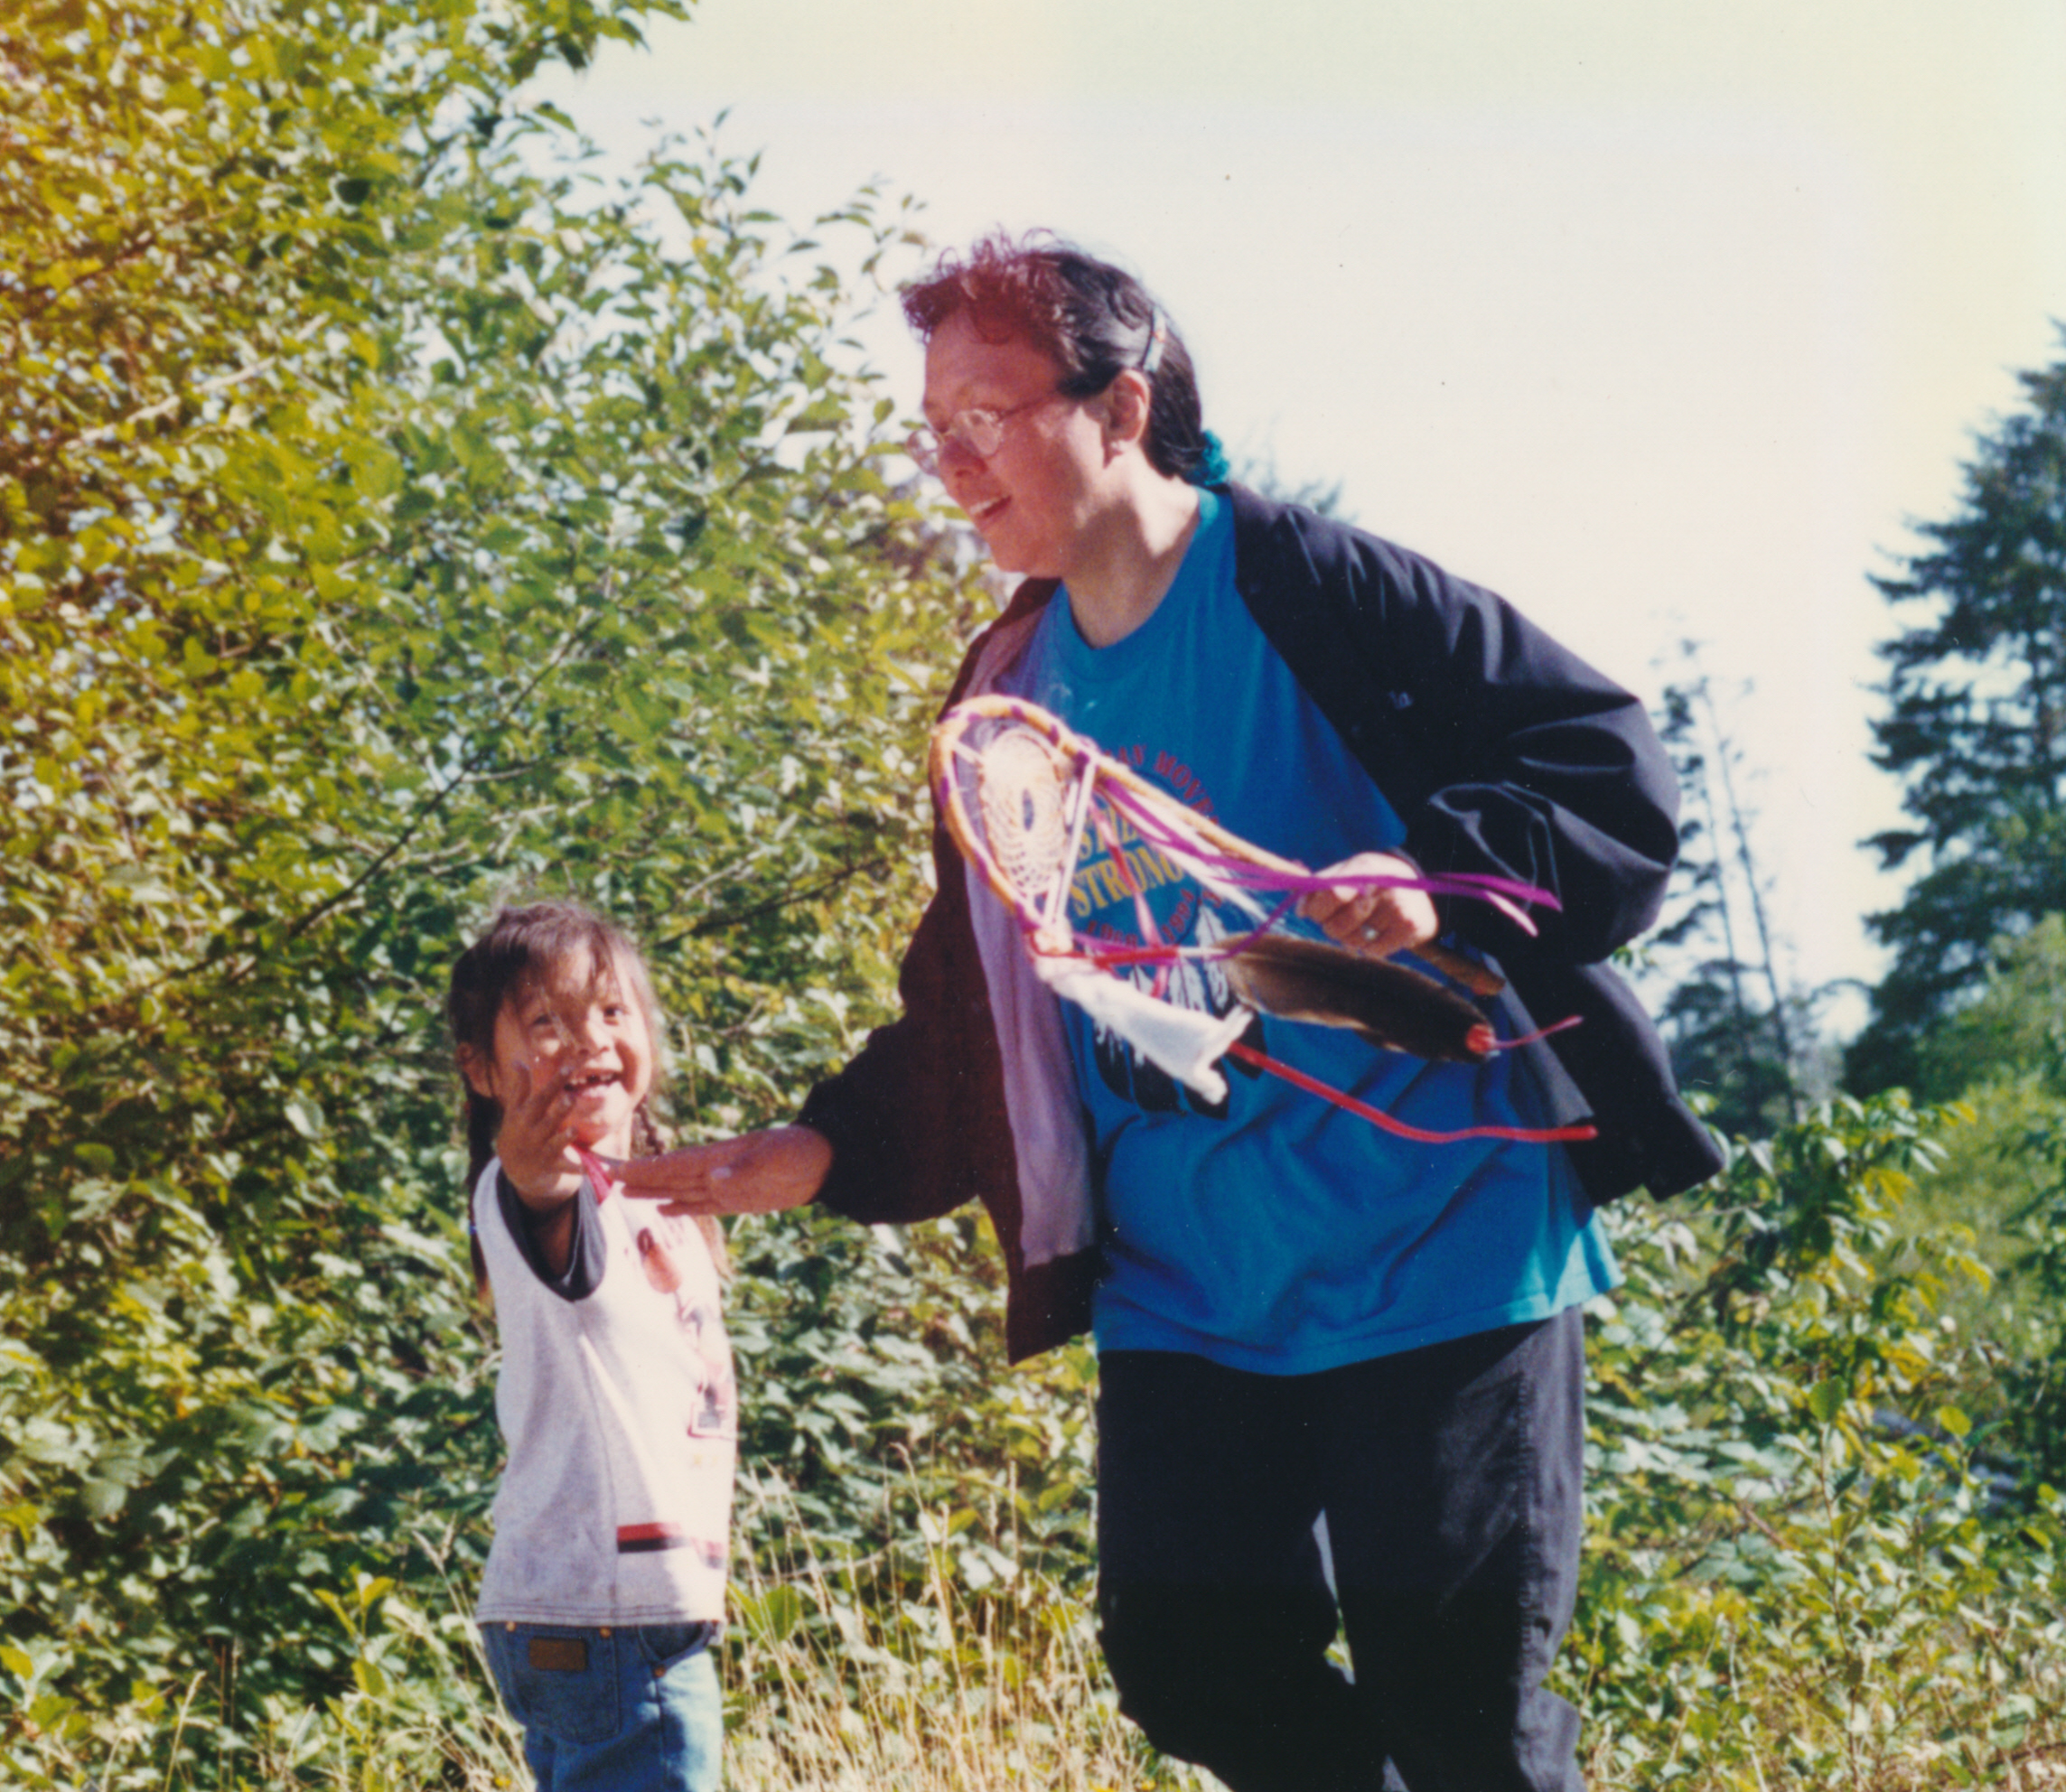 Elaine Sutterlick and her youngest son